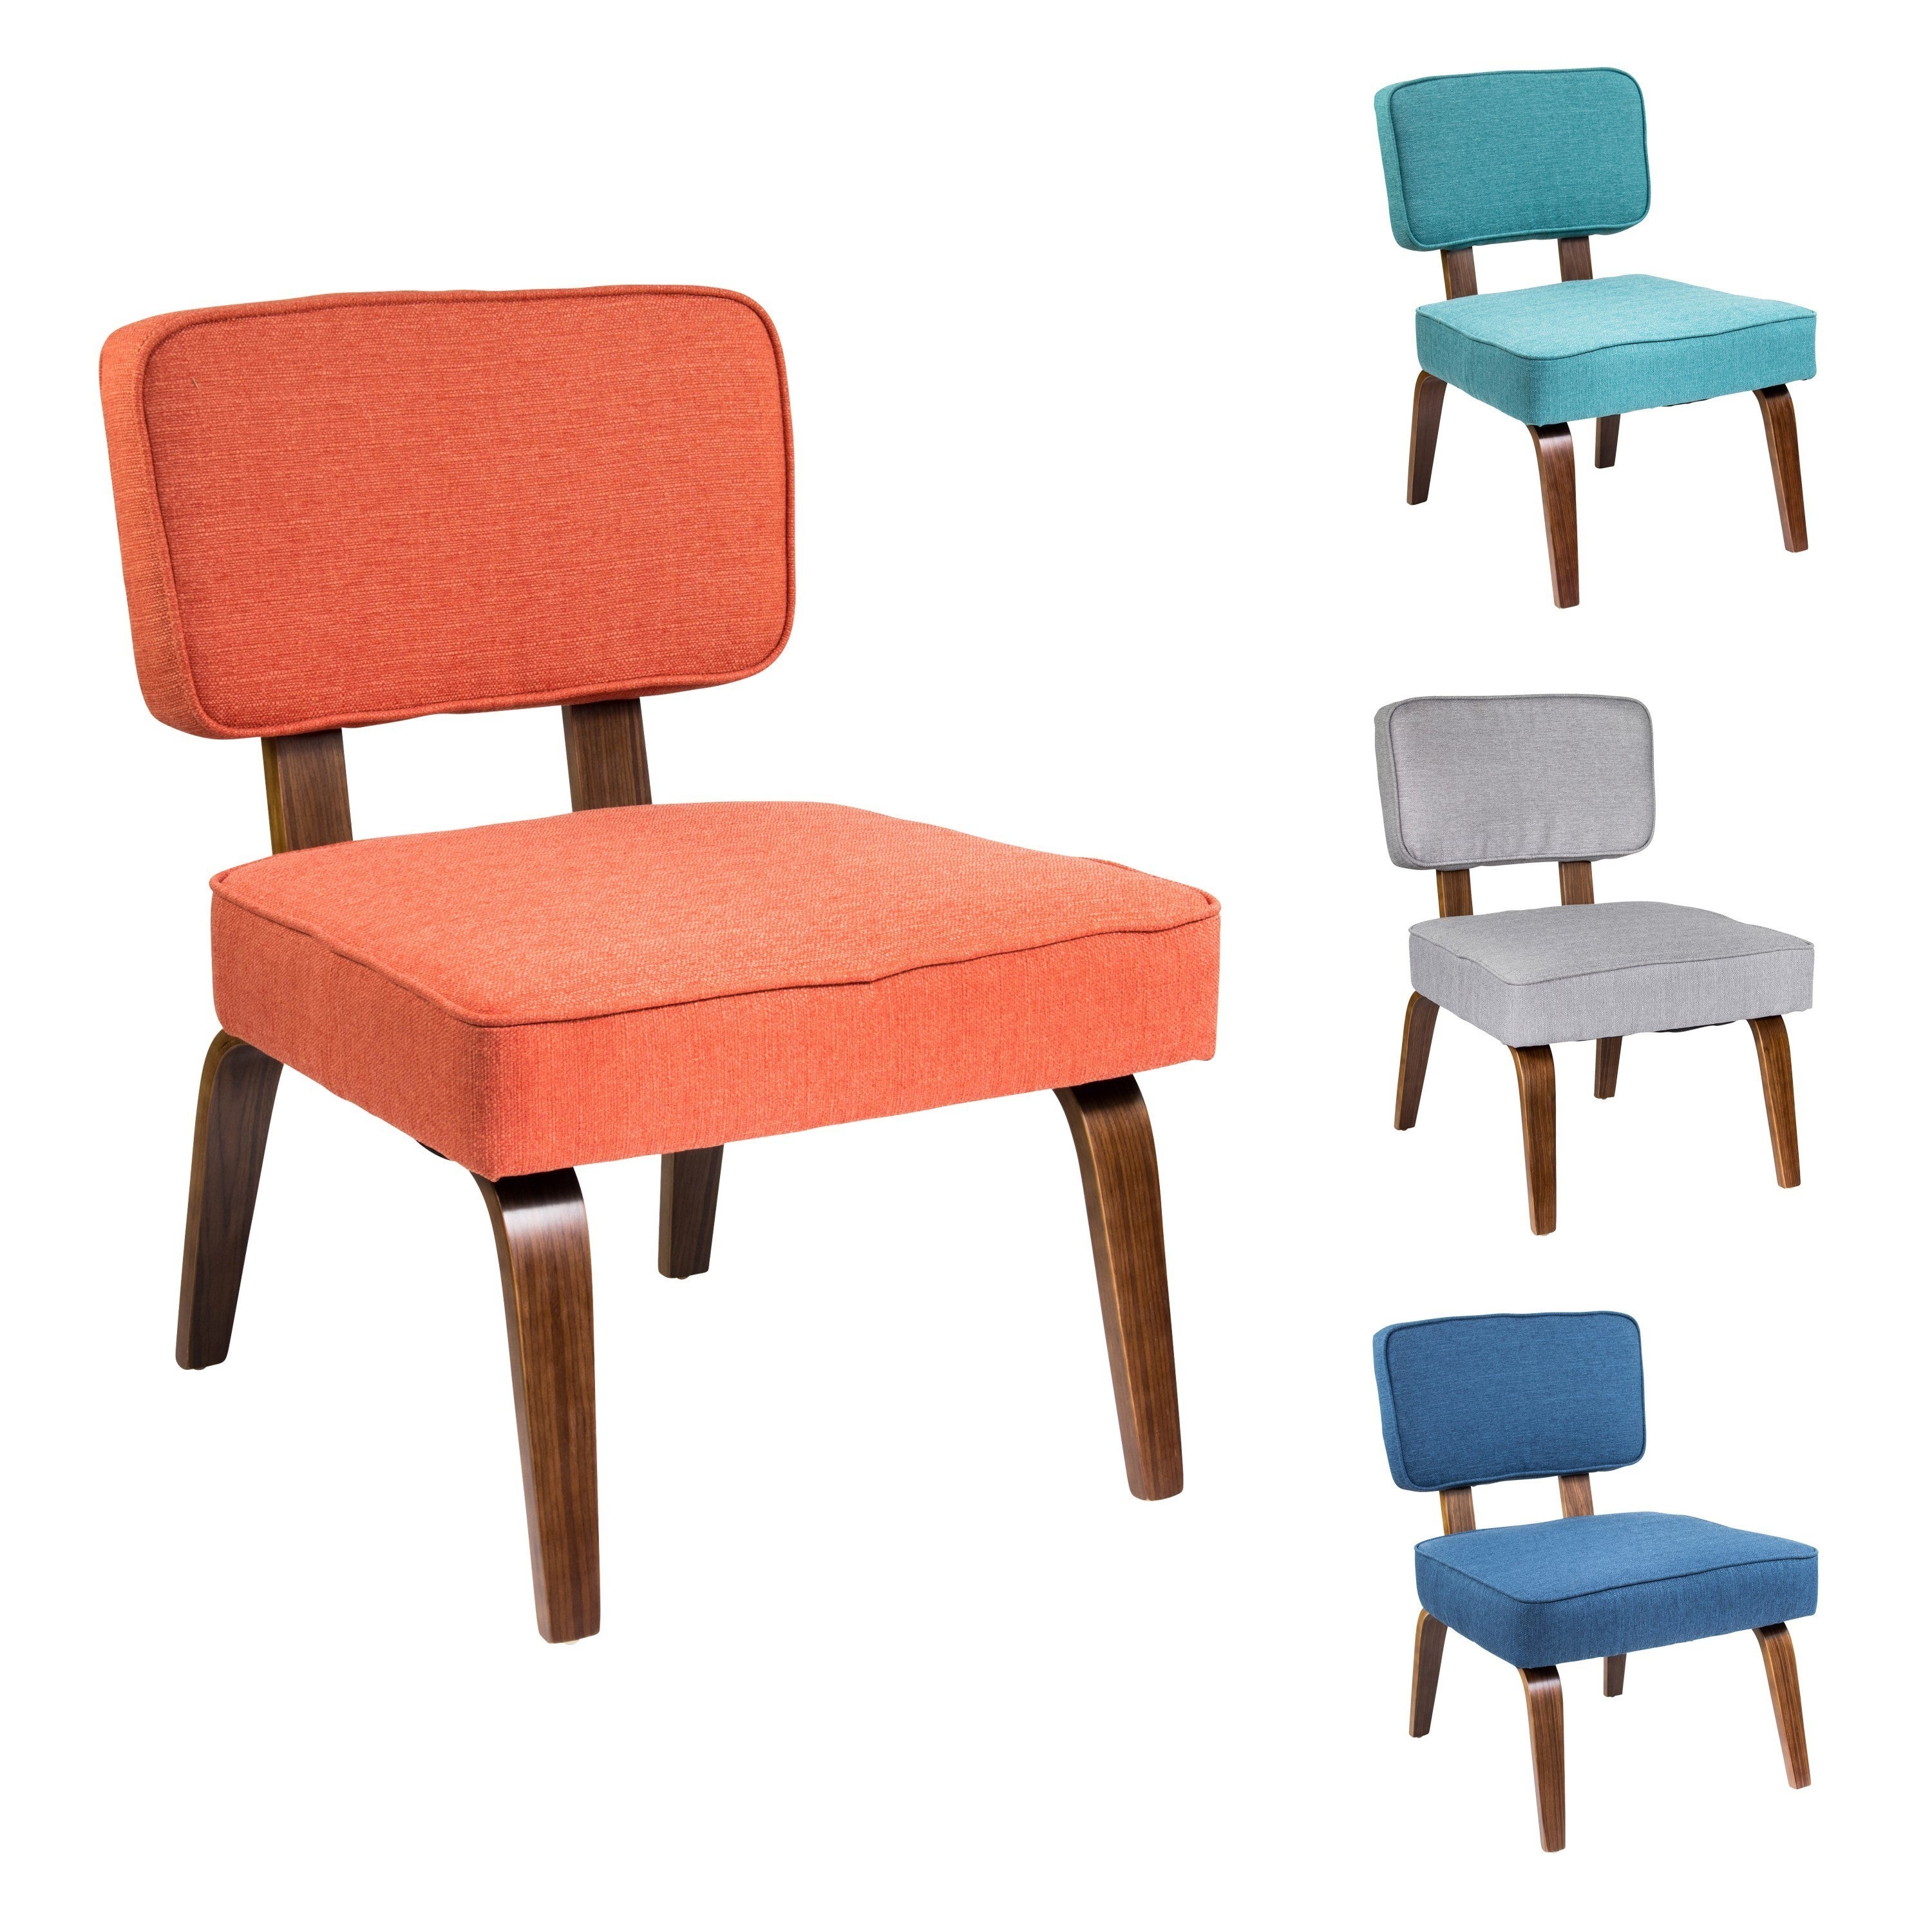 Shop Nunzio Mid Century Modern Wood Accent Chair Free Shipping